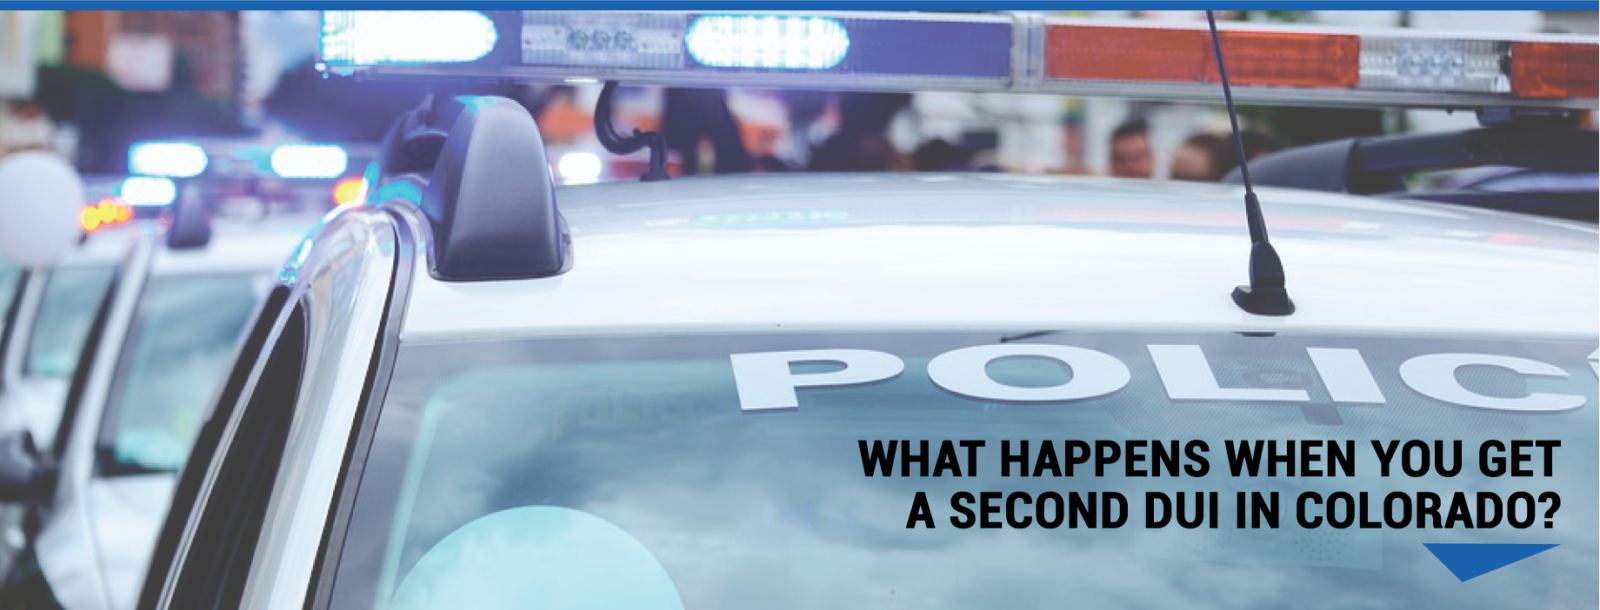 What Happens When You Get a Second DUI in Colorado?